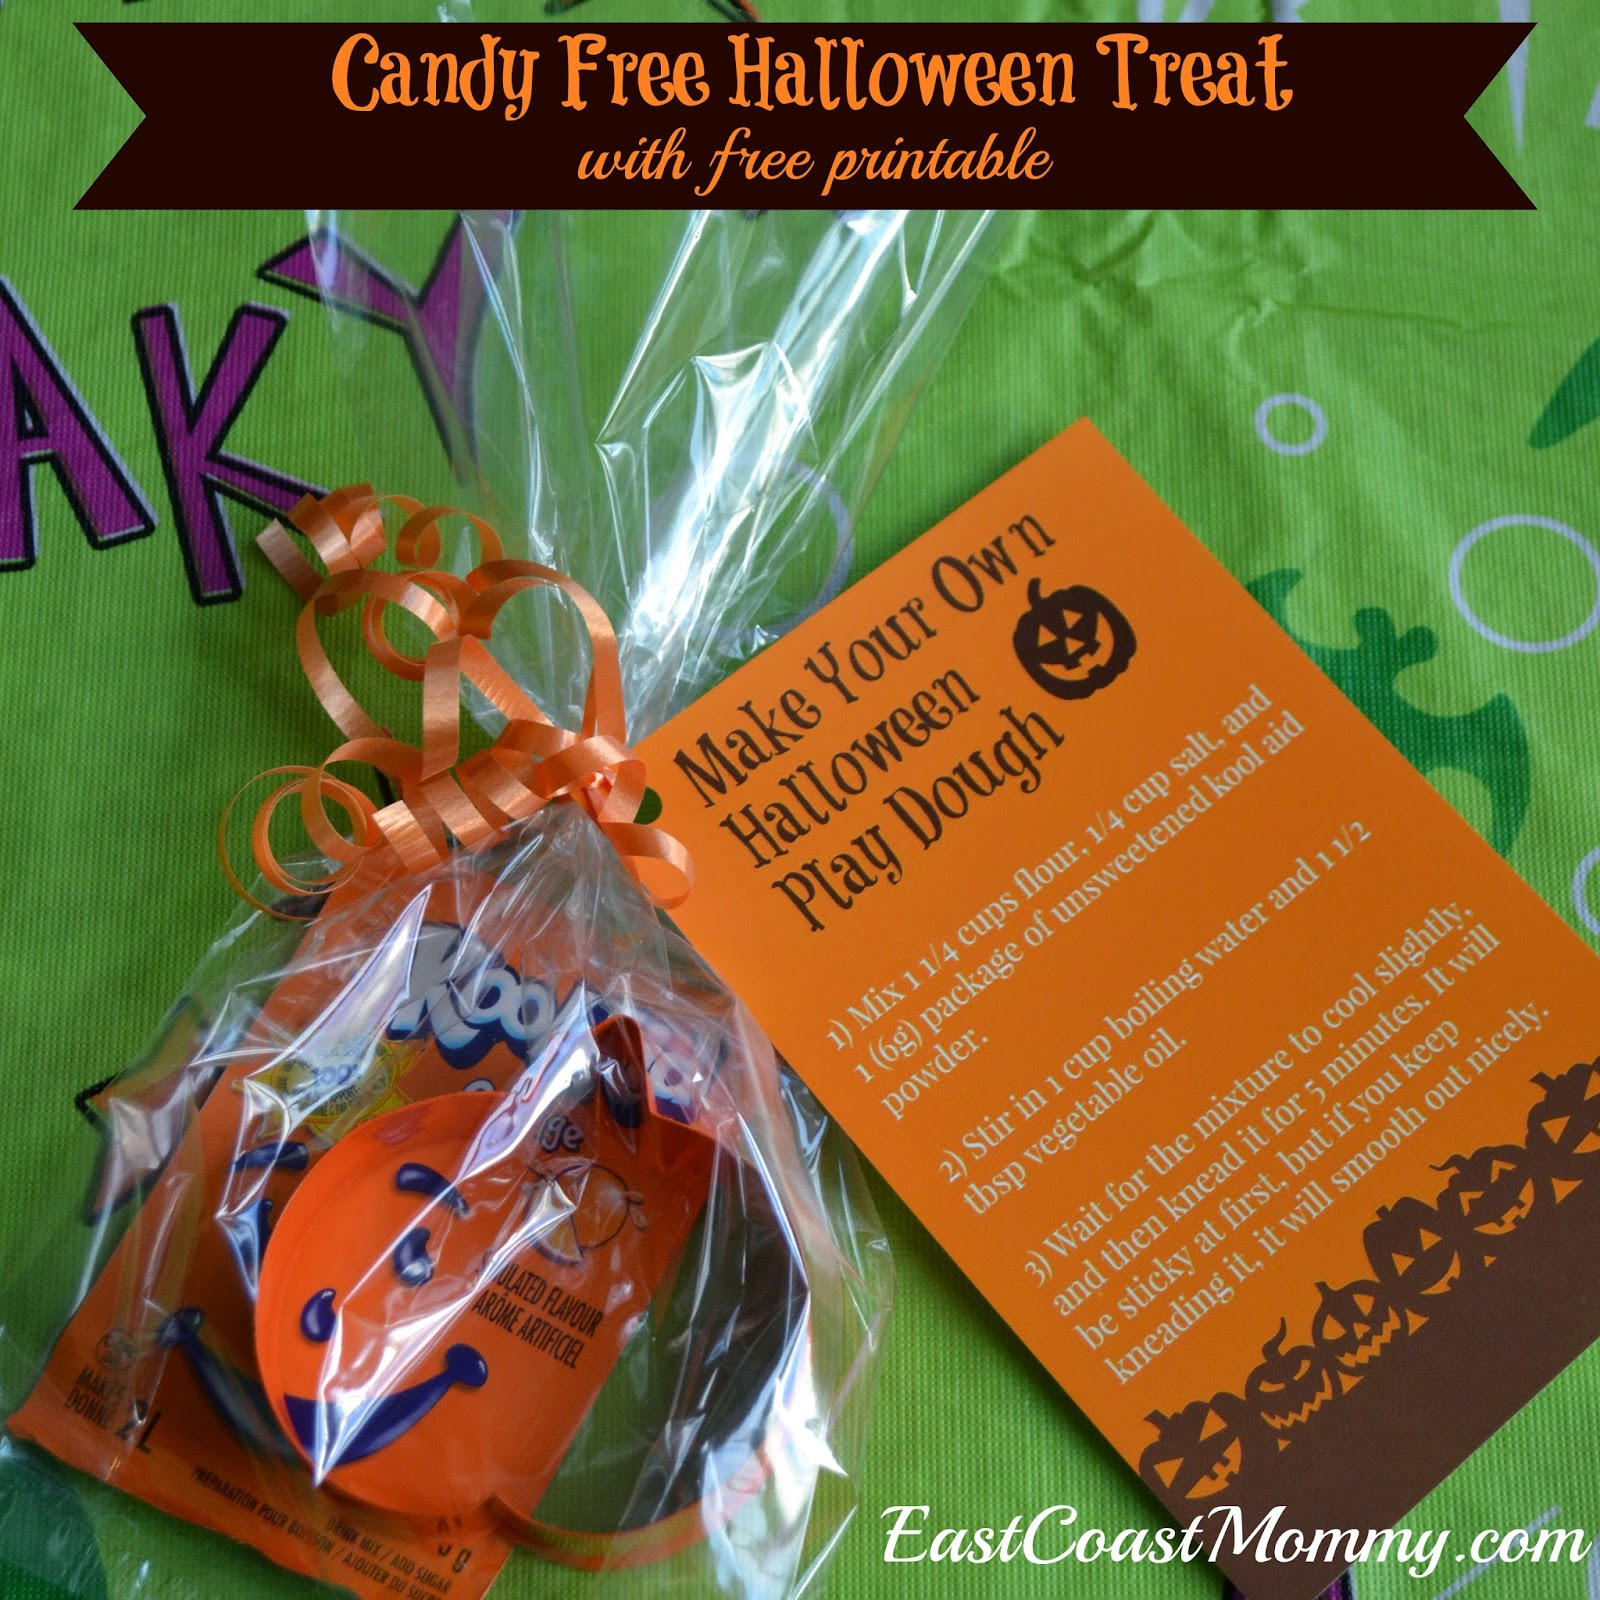 east coast mommy: halloween candy alternatives kids will love